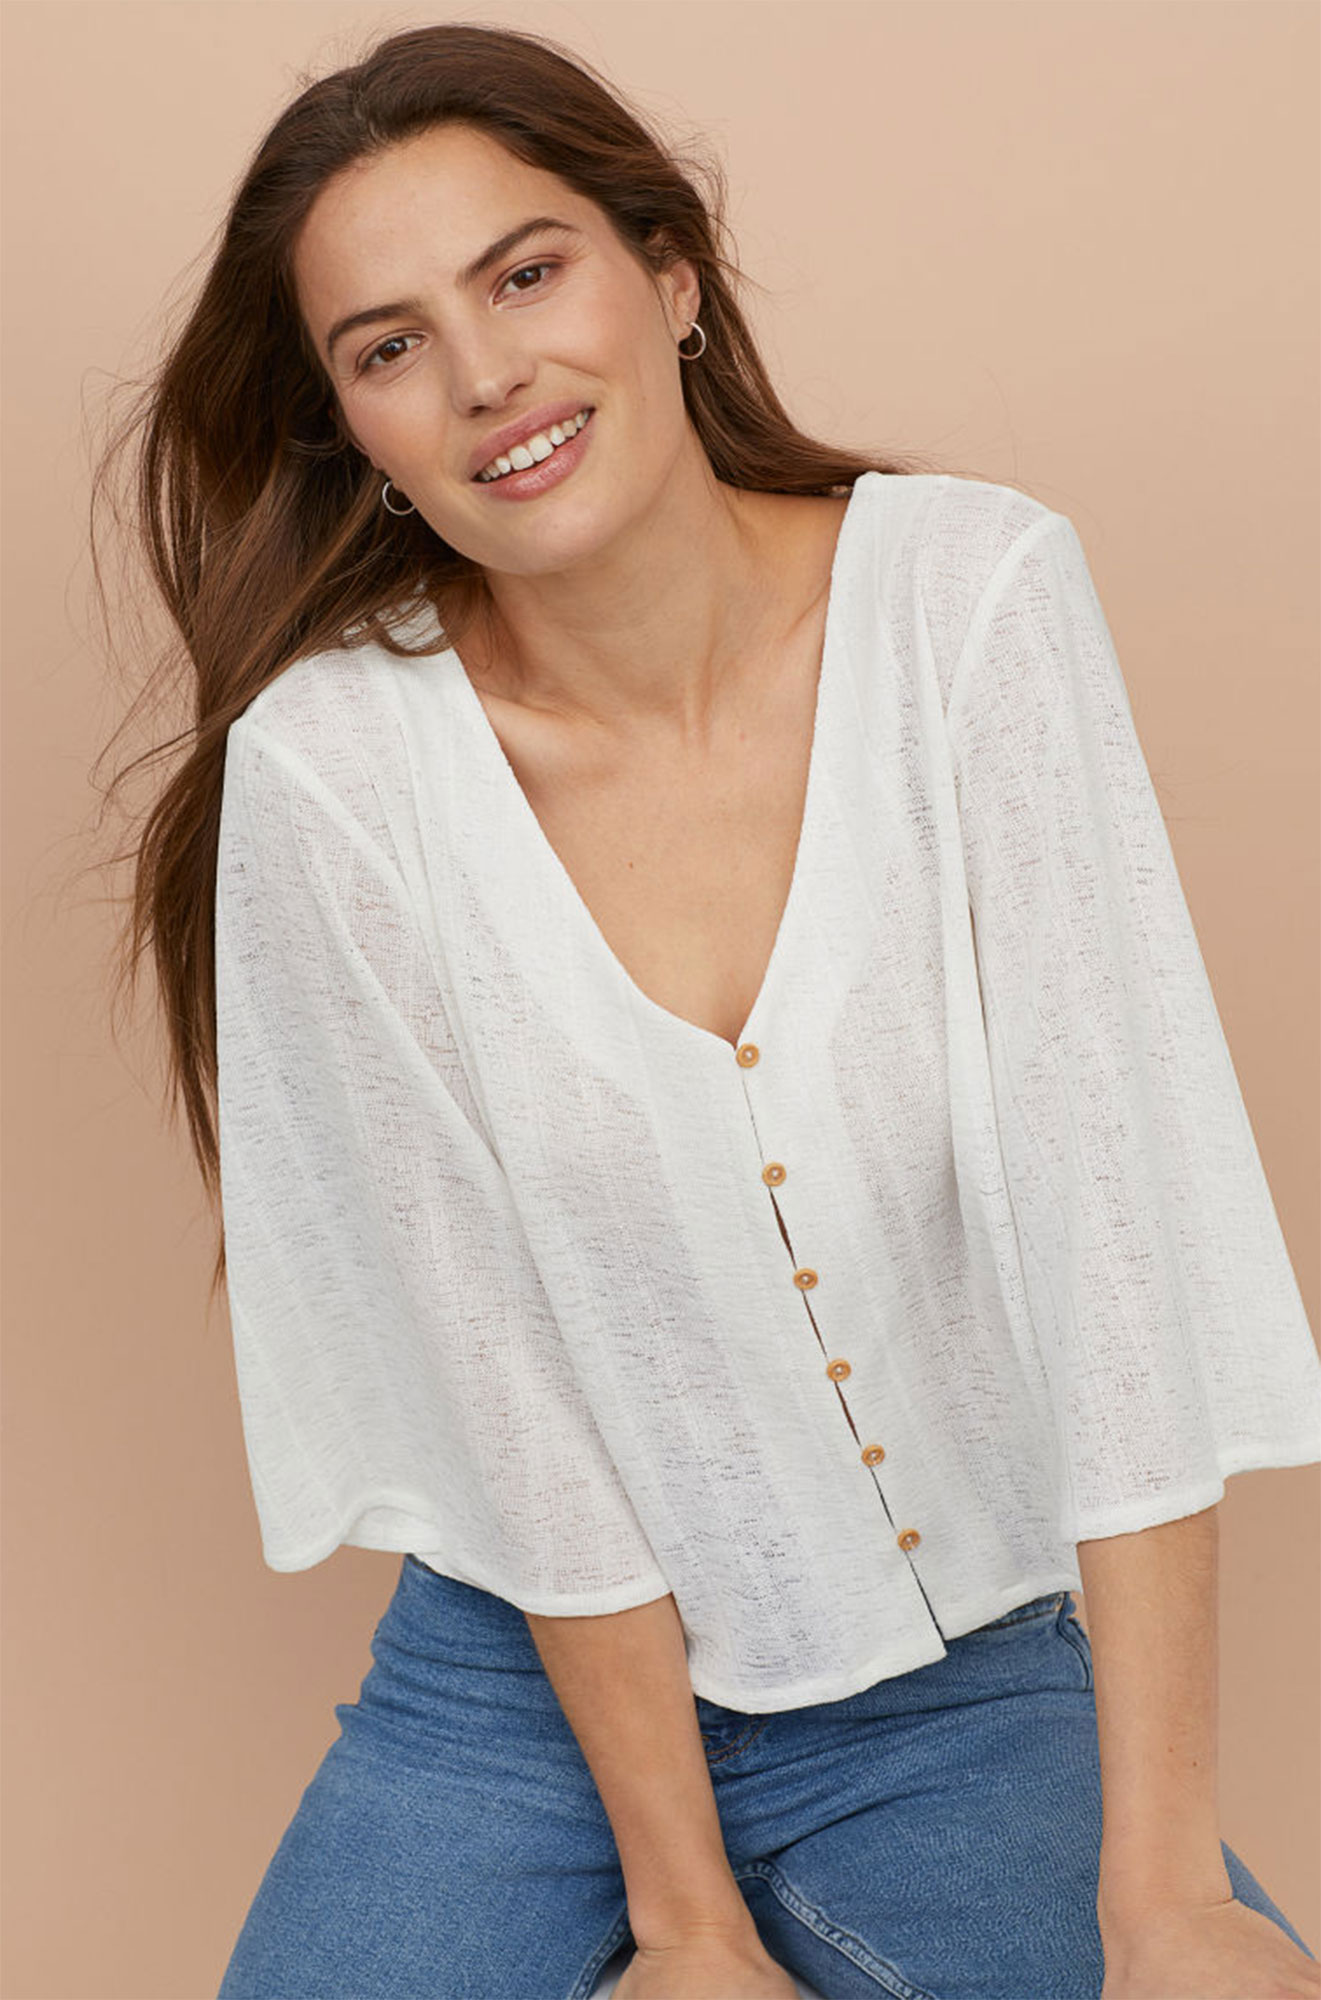 Kendal Jenner Is Bringing Back the Cropped Cardigan ‹ and So Can You - Fluttery butterfly sleeves up the flinty factor of this semi-sheer topper a festival season-must. $24.99, hm.com